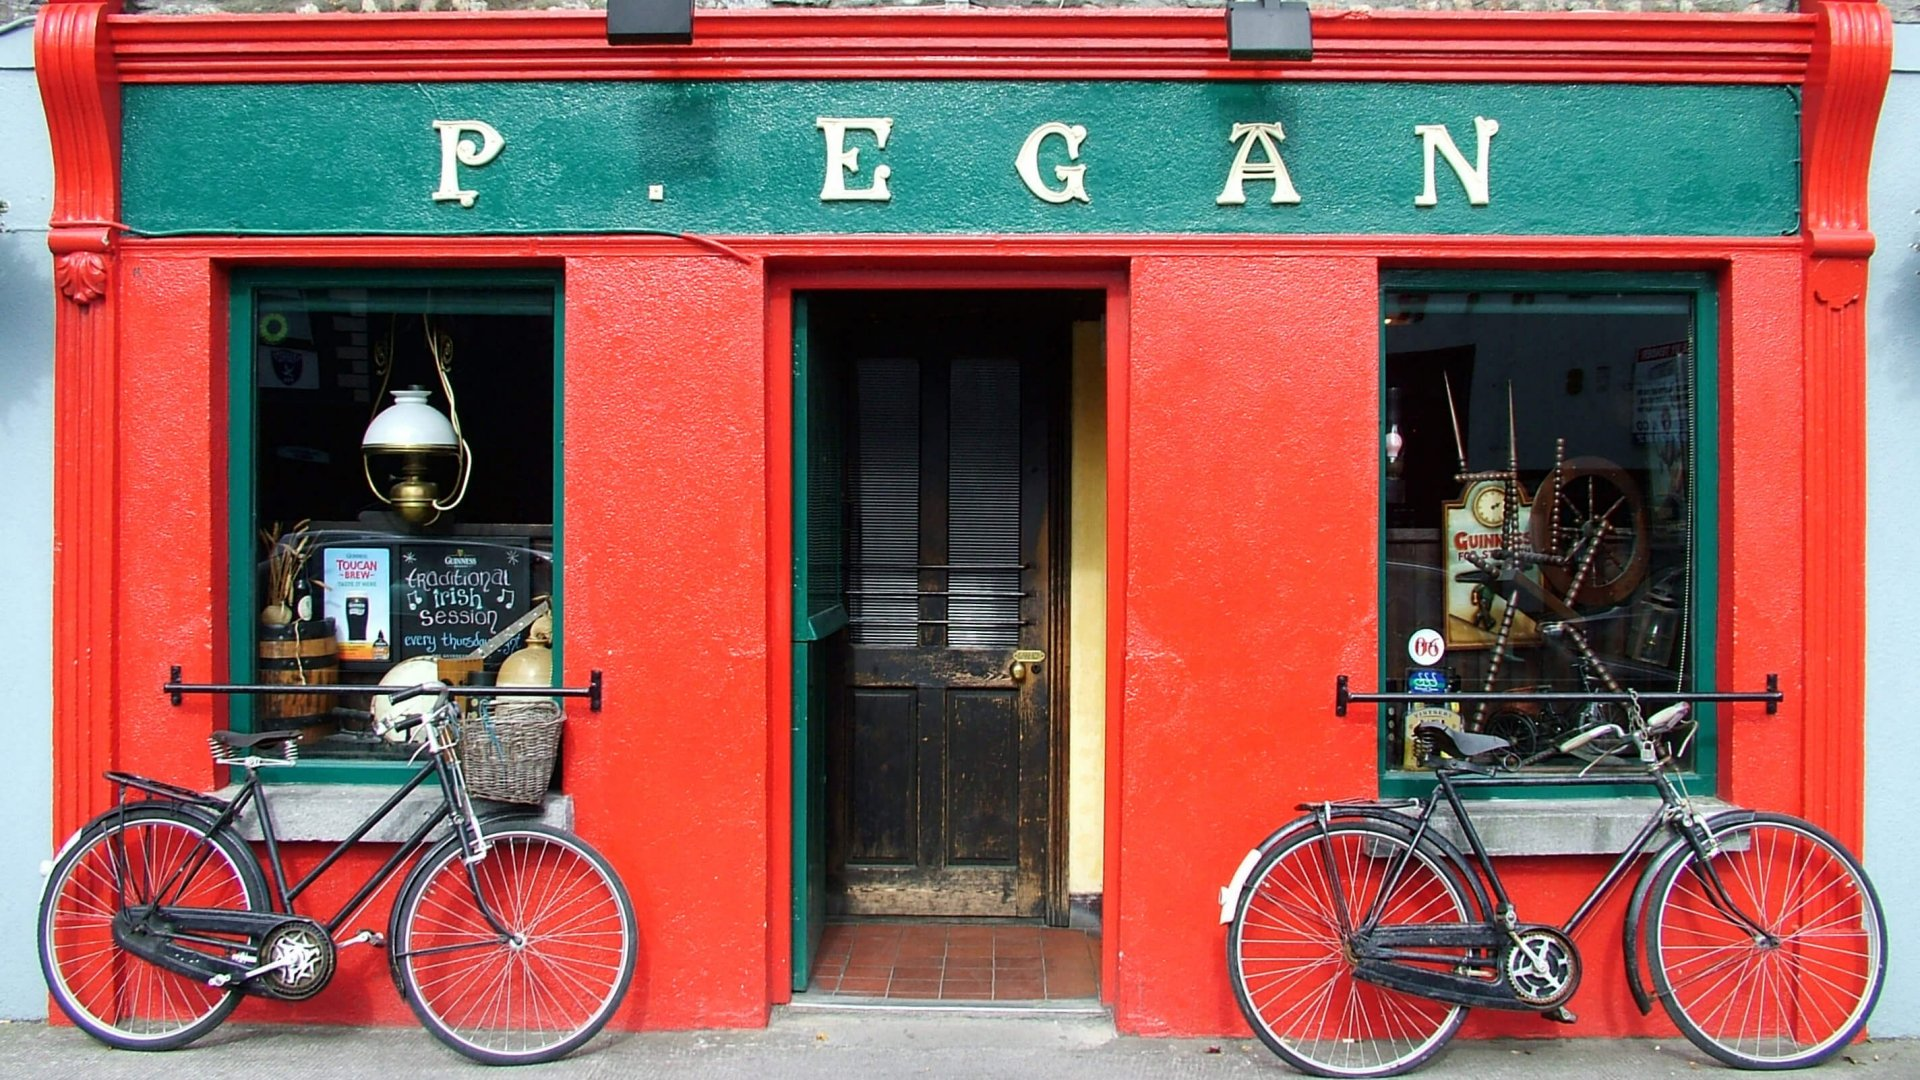 Traditional red and green Irish pub front